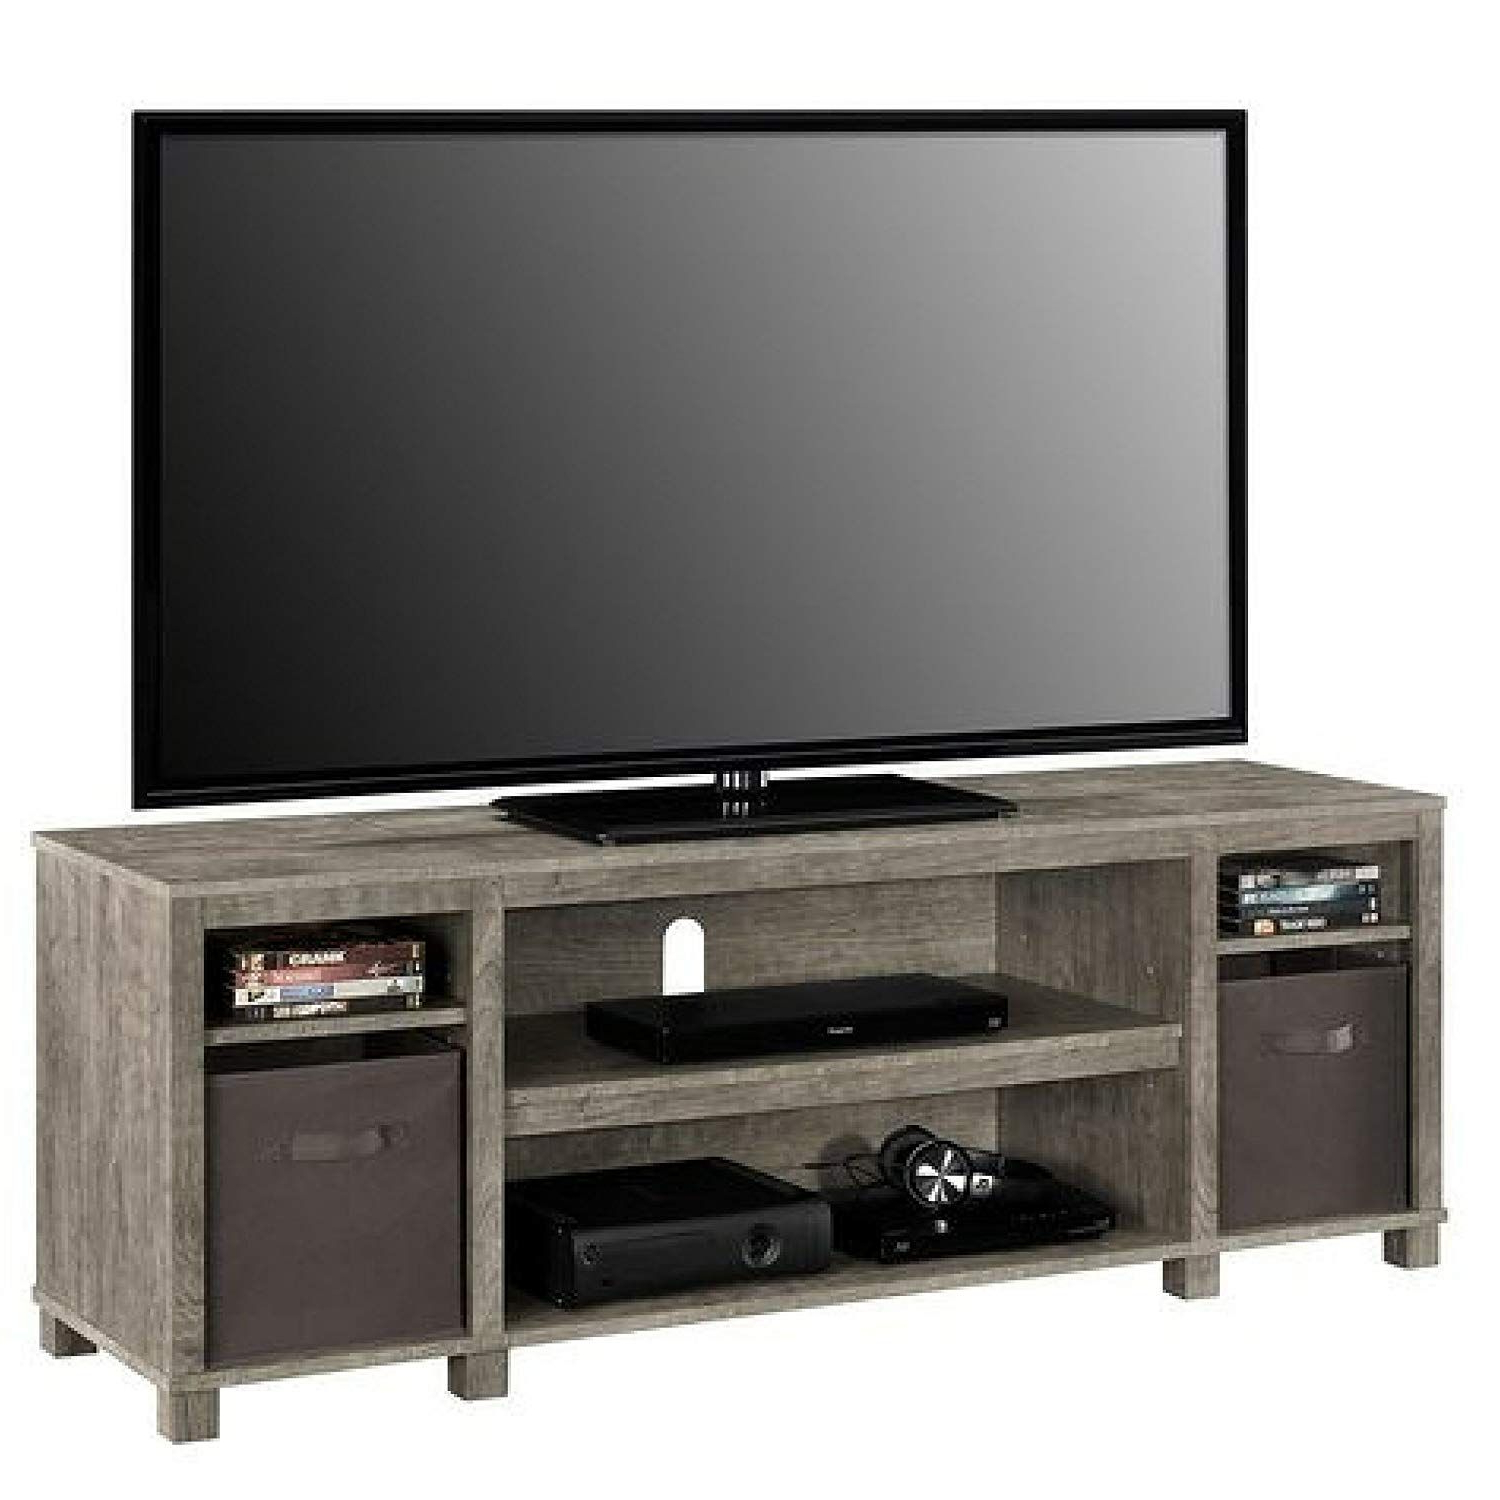 Mainstay Sleek Classic Design 65 Open Shelves Grey Tv Intended For Mainstays Tv Stands For Tvs With Multiple Colors (View 11 of 20)